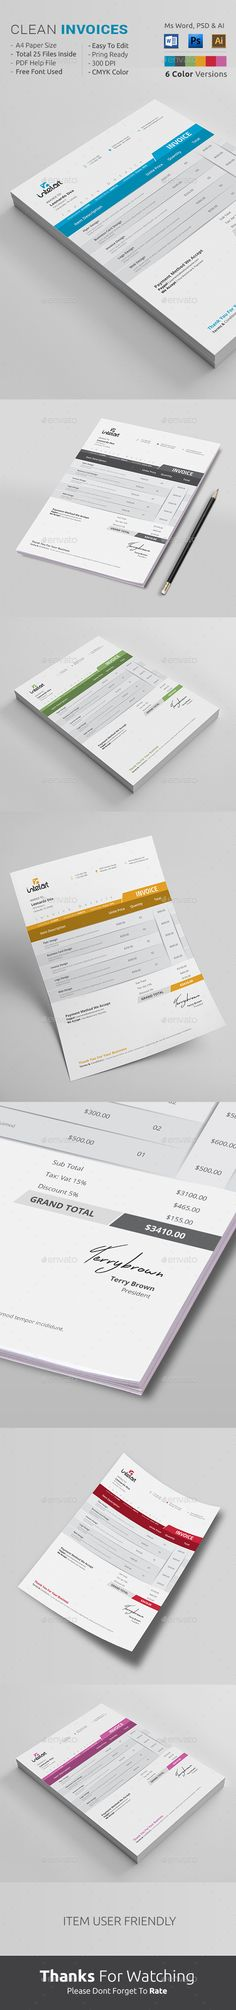 Invoice Invoice design, Brand identity and Proposal templates - Download Invoice